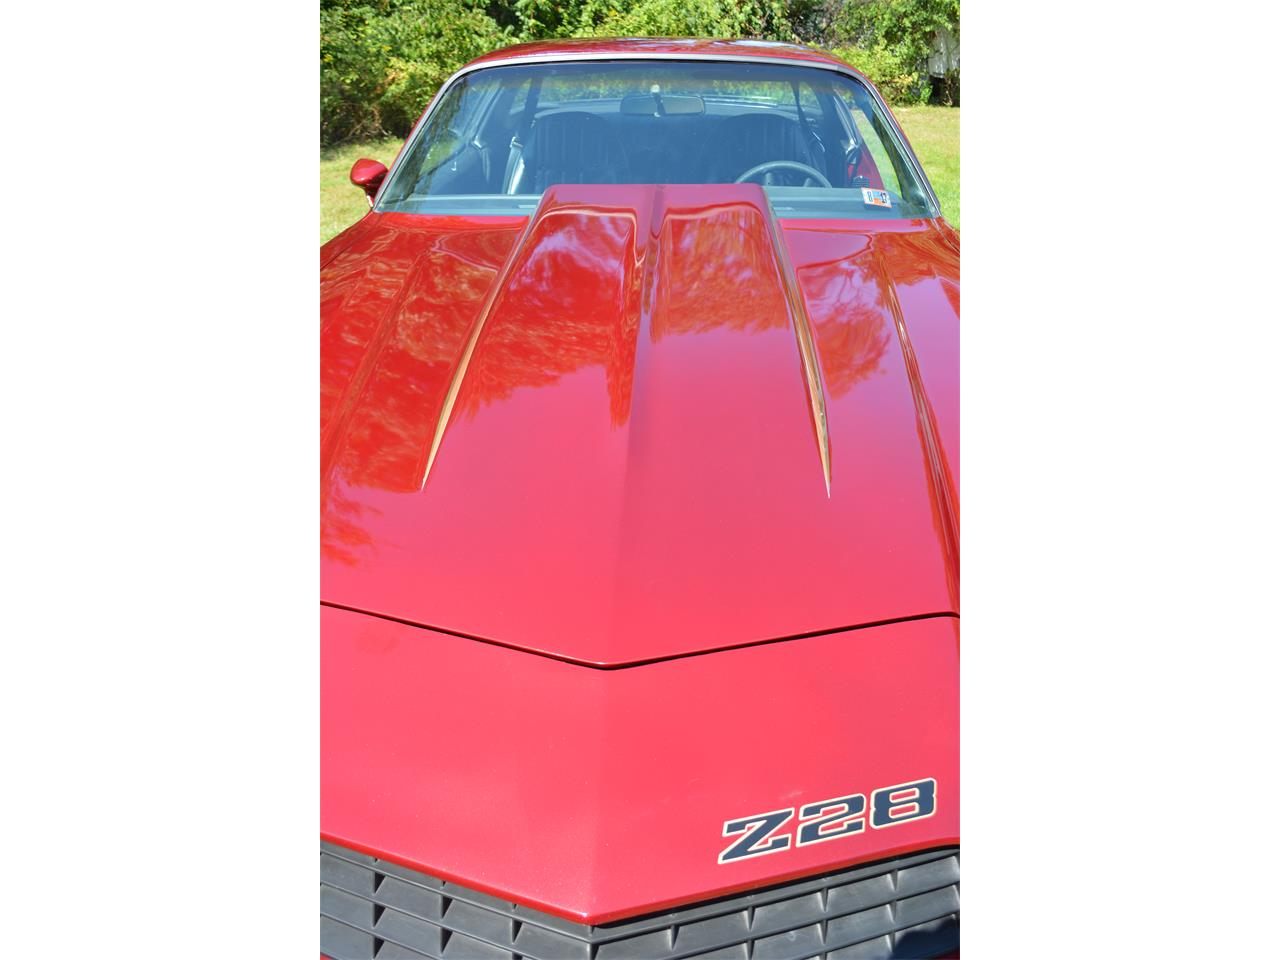 Large Picture of 1979 Chevrolet Camaro Z28 located in Greenville Pennsylvania - $17,500.00 - OTFP